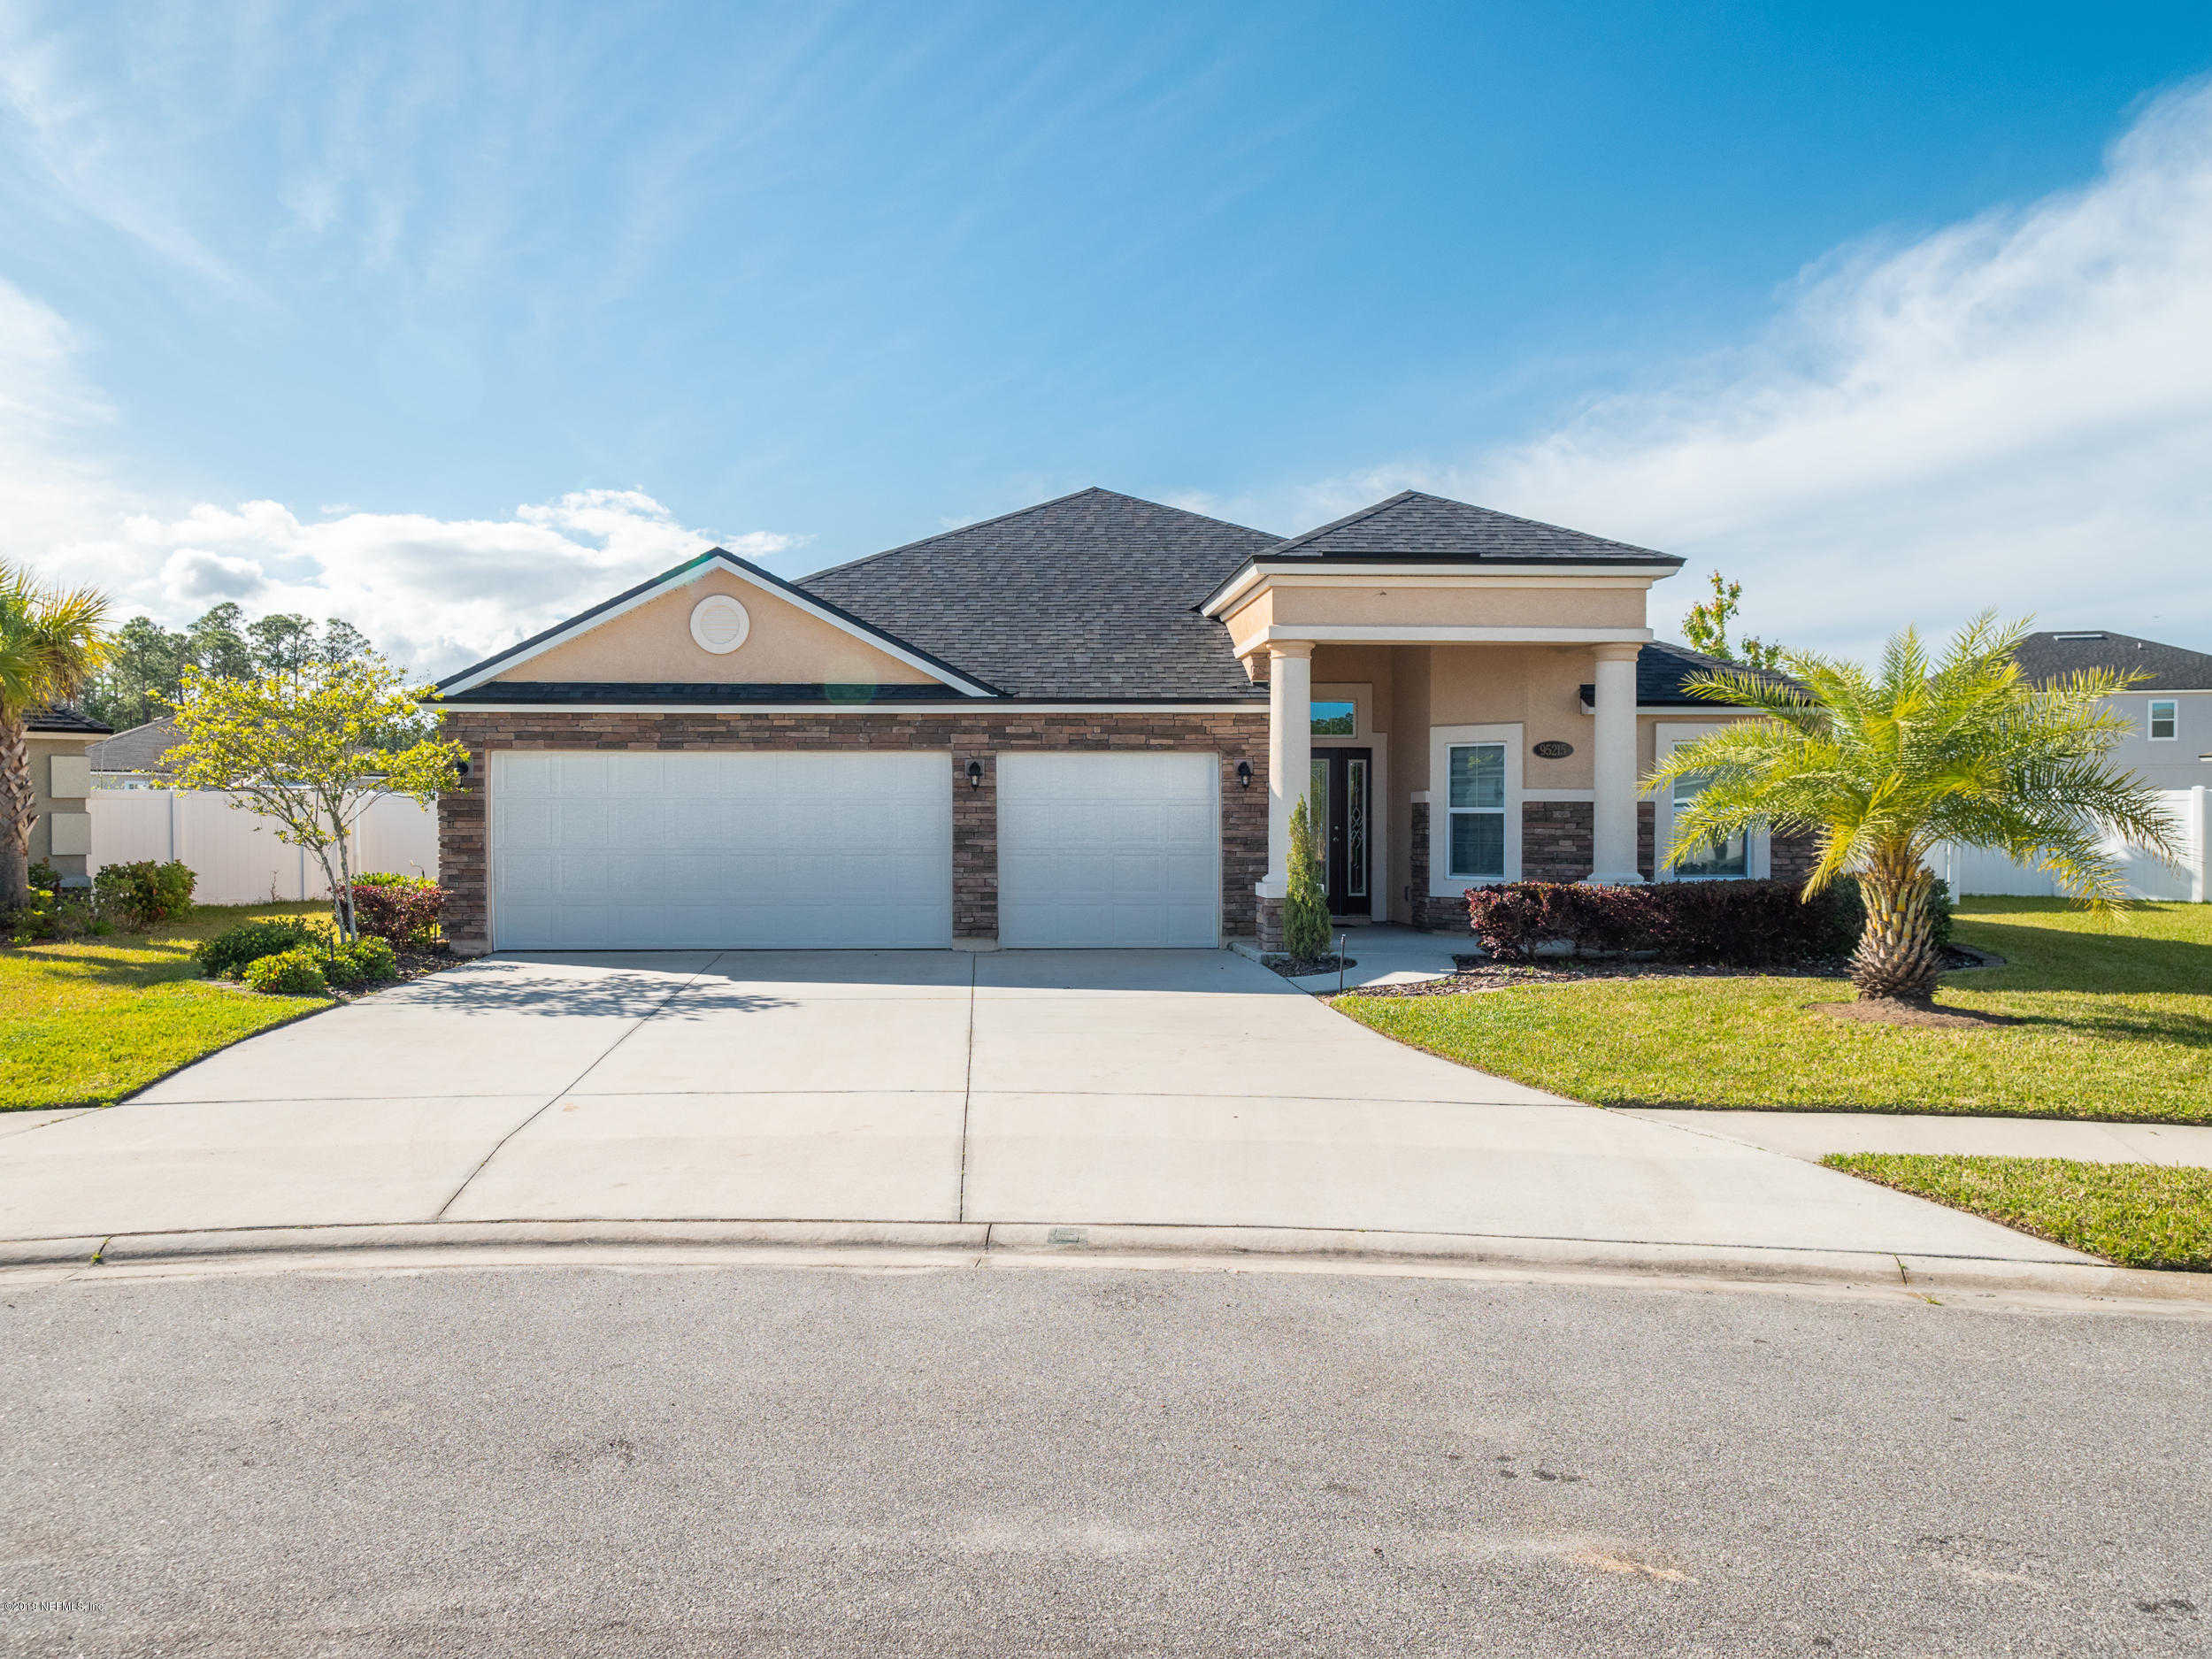 95215 Leafcrest CT, Fernandina Beach, FL 32034 is now new to the market!